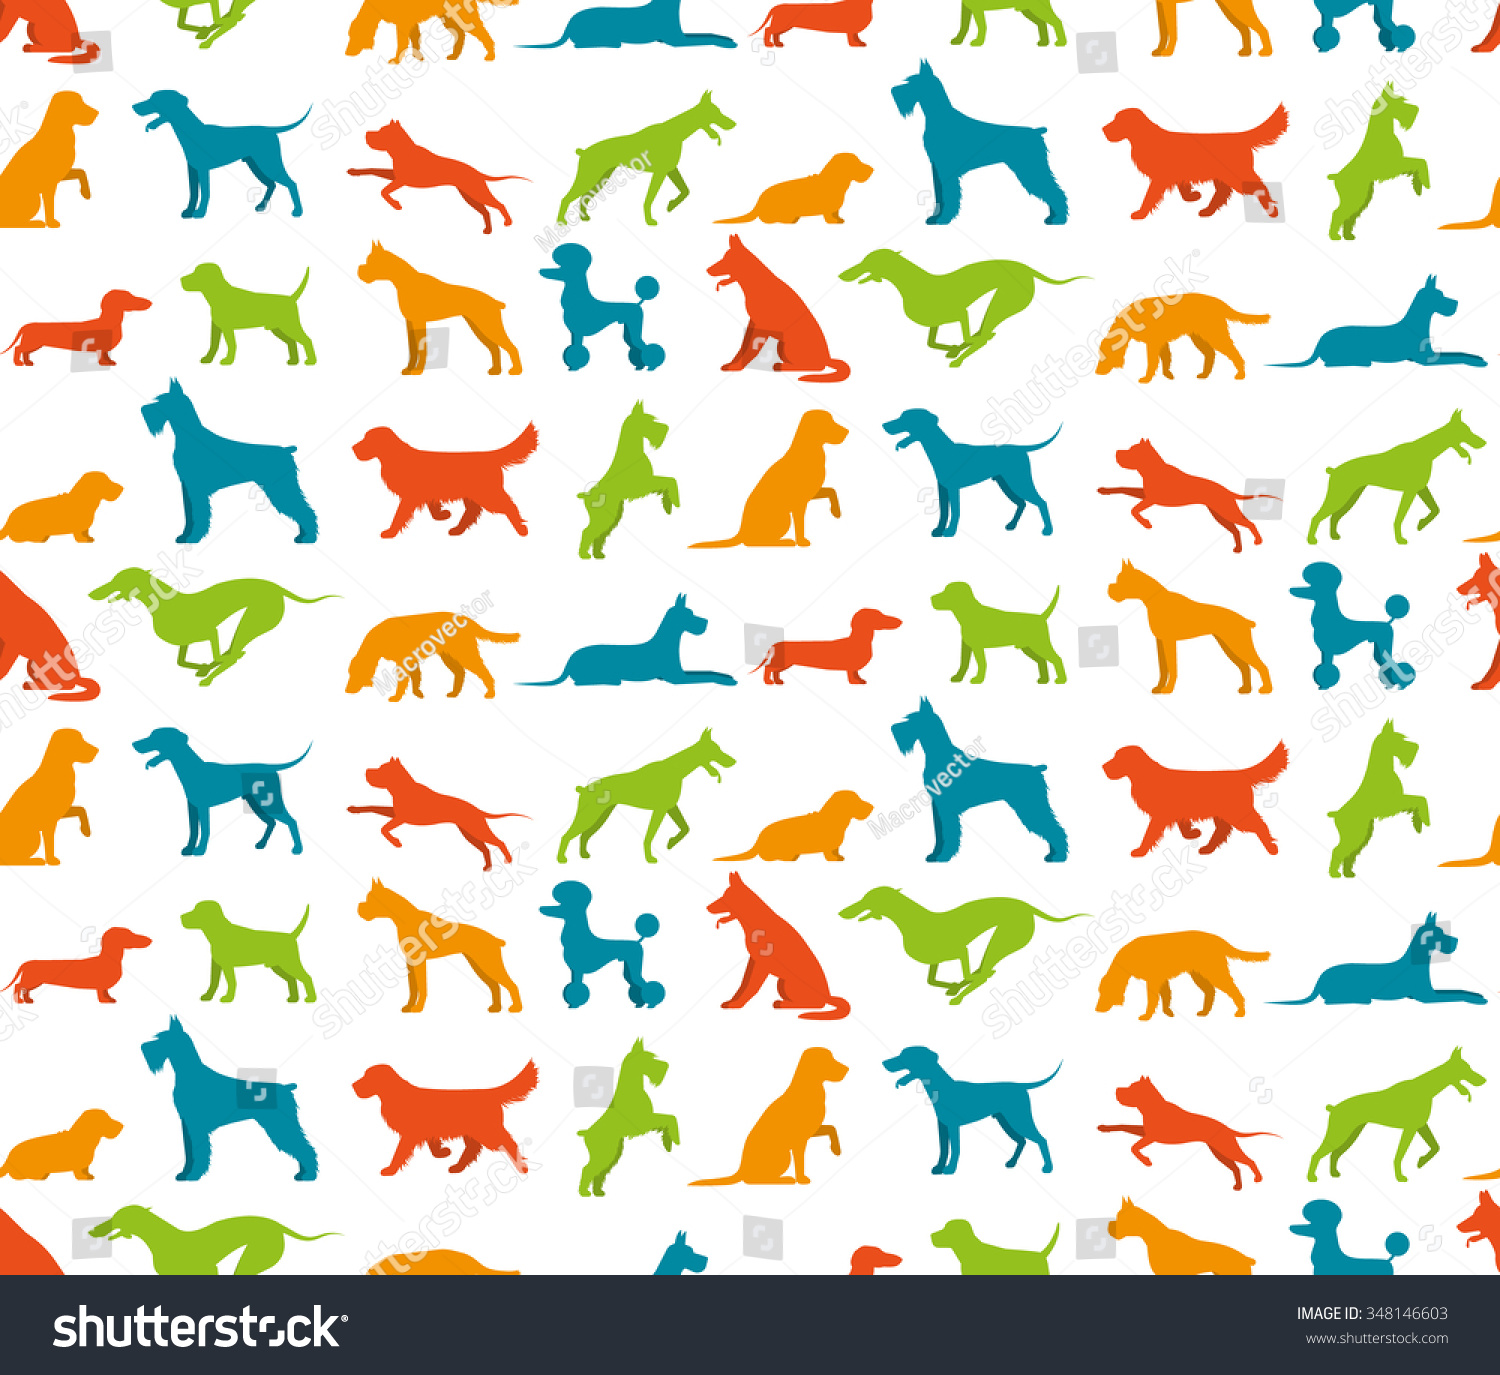 Dog Seamless Pattern Flat Pet Breeds Stock Vector